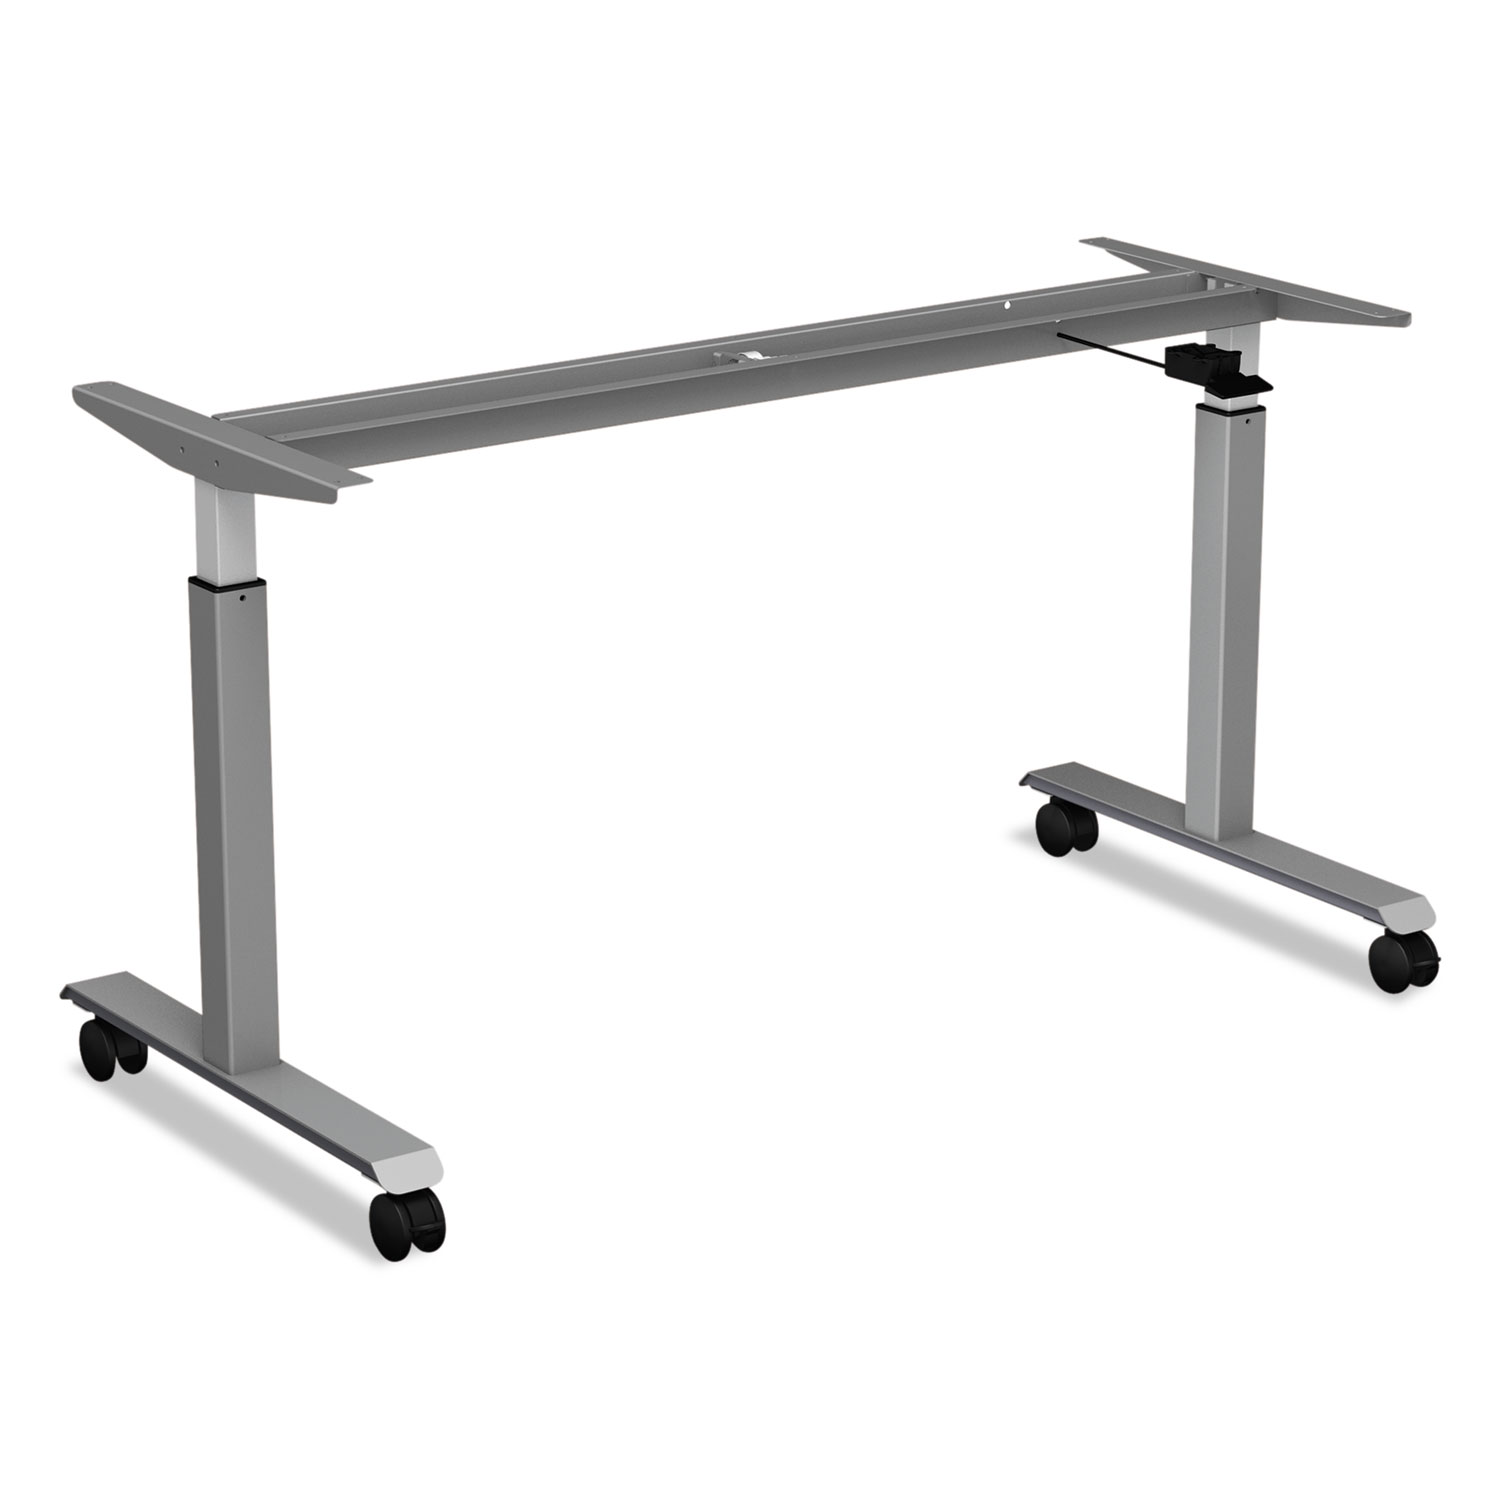 height dura zealand desk table adjustable legs new grocare